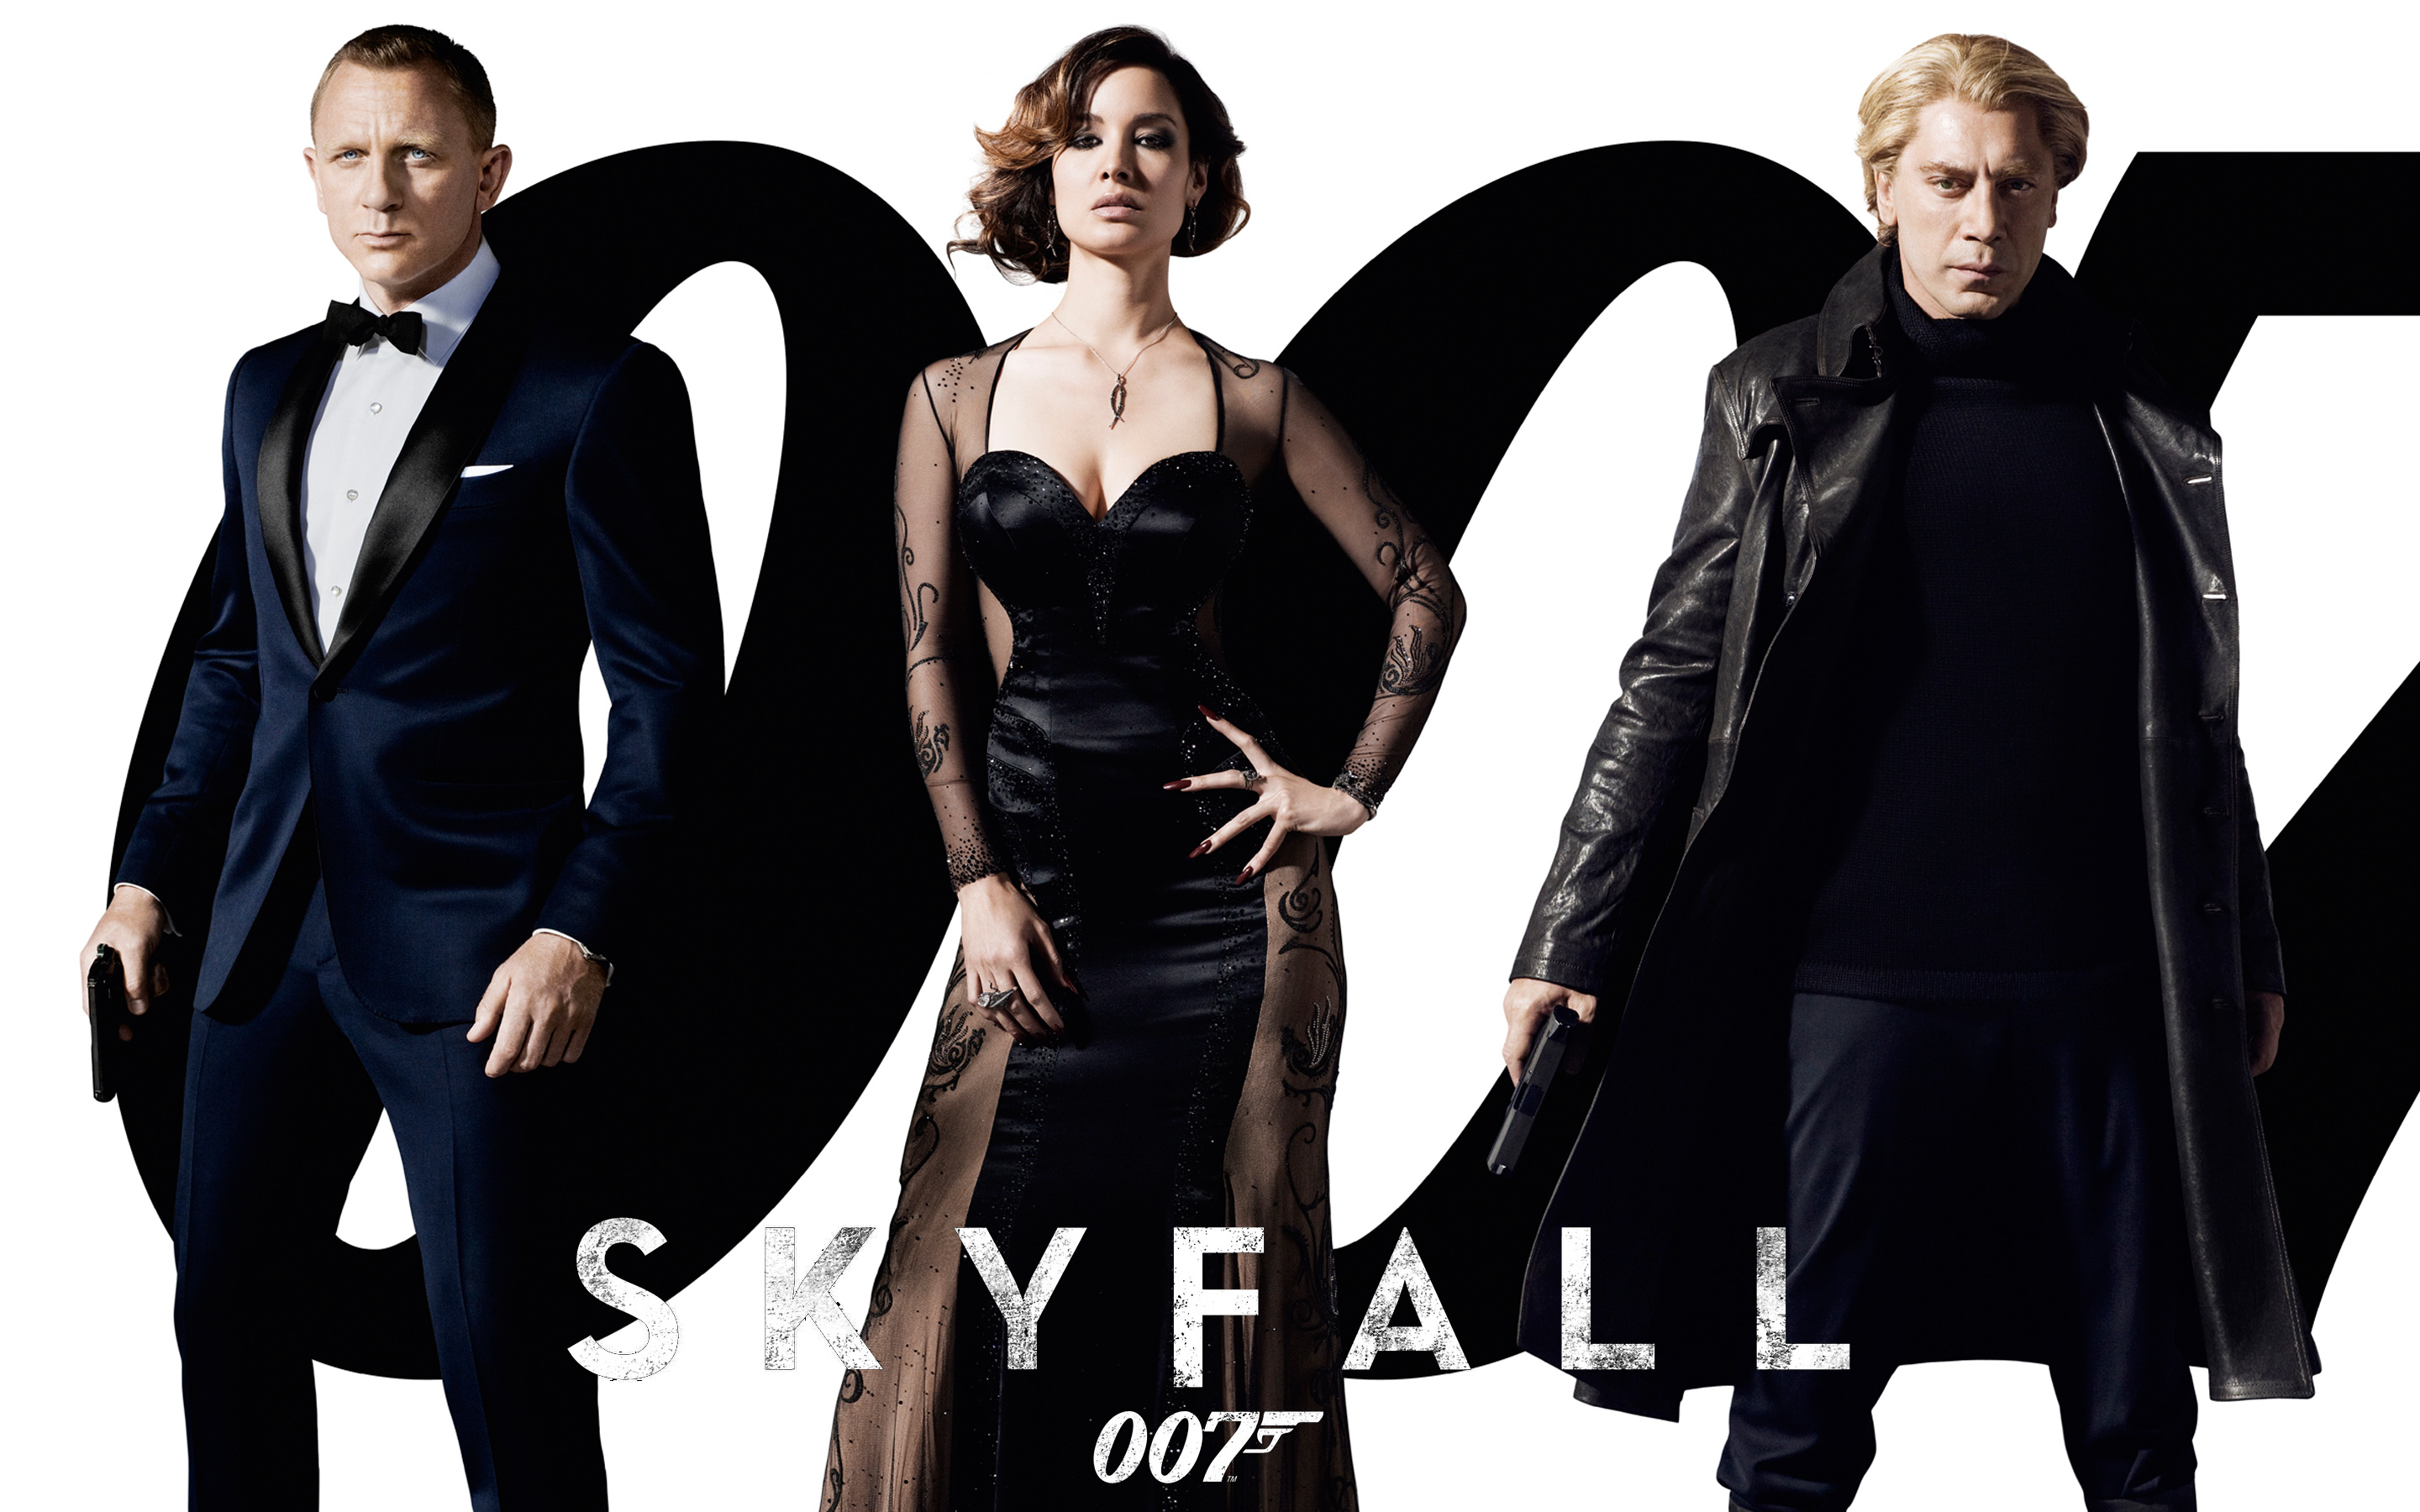 casino royale 007 online hd